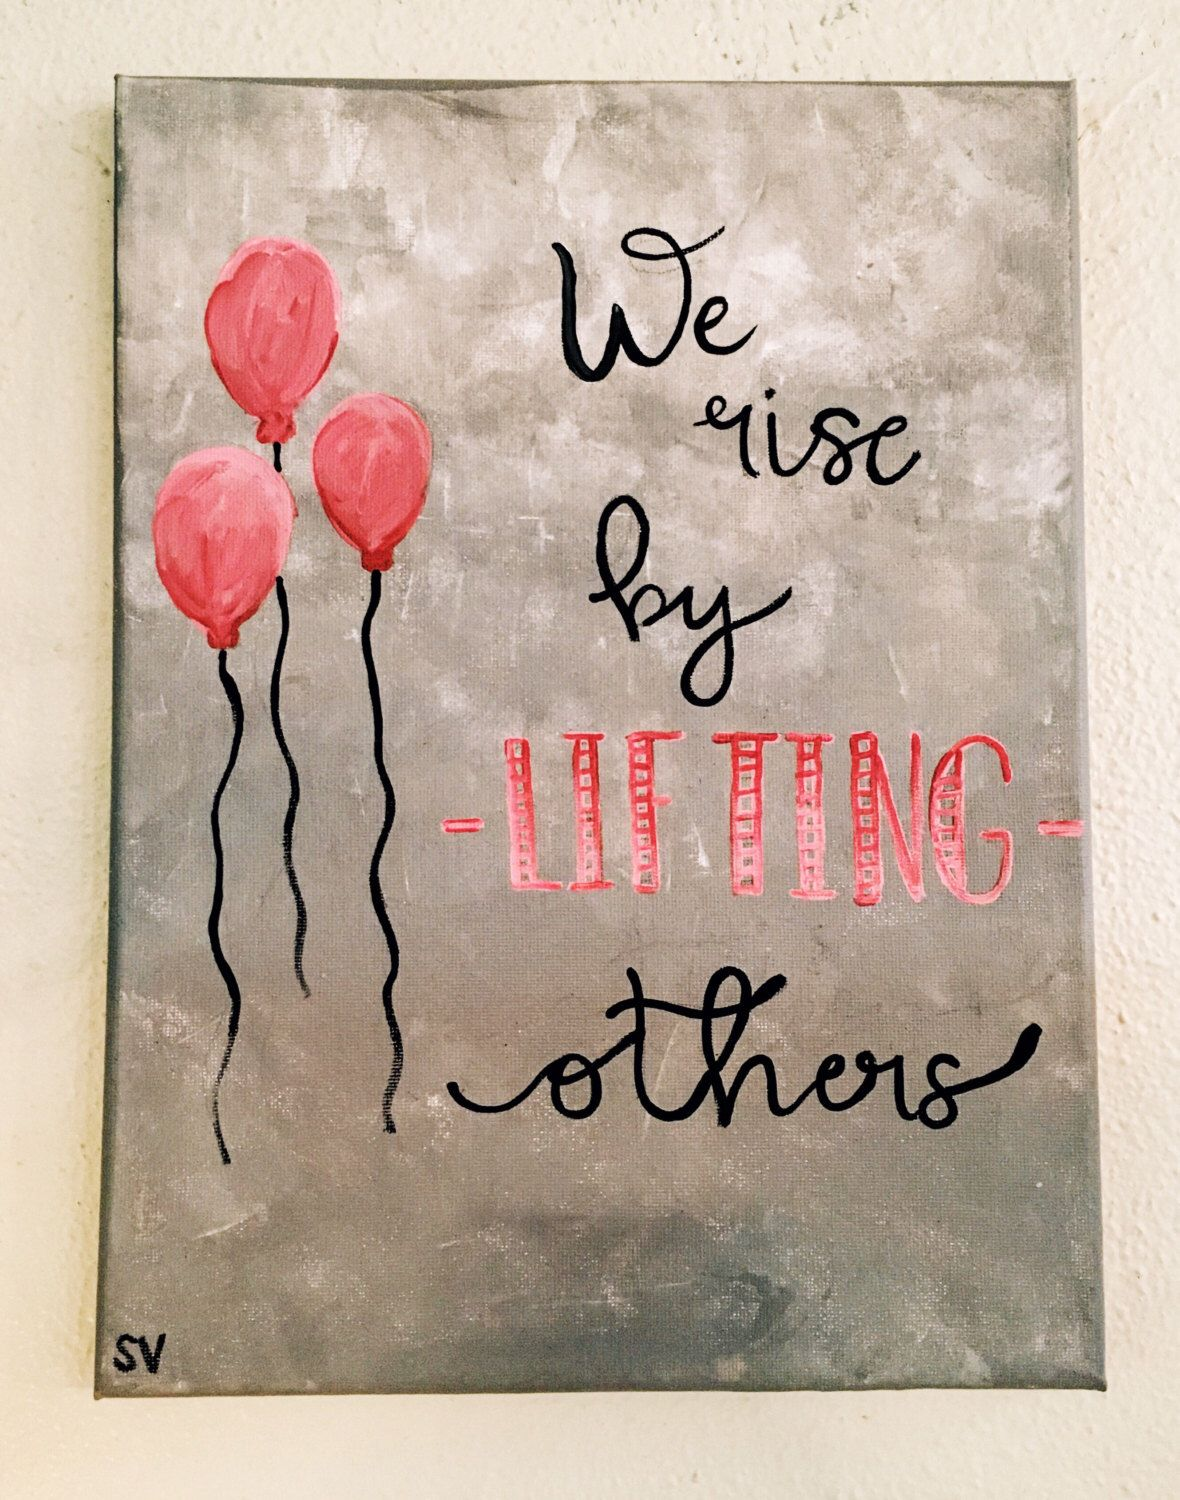 Lift Others Quote Canvas Painting by MuseArtwork on Etsy https://www.etsy